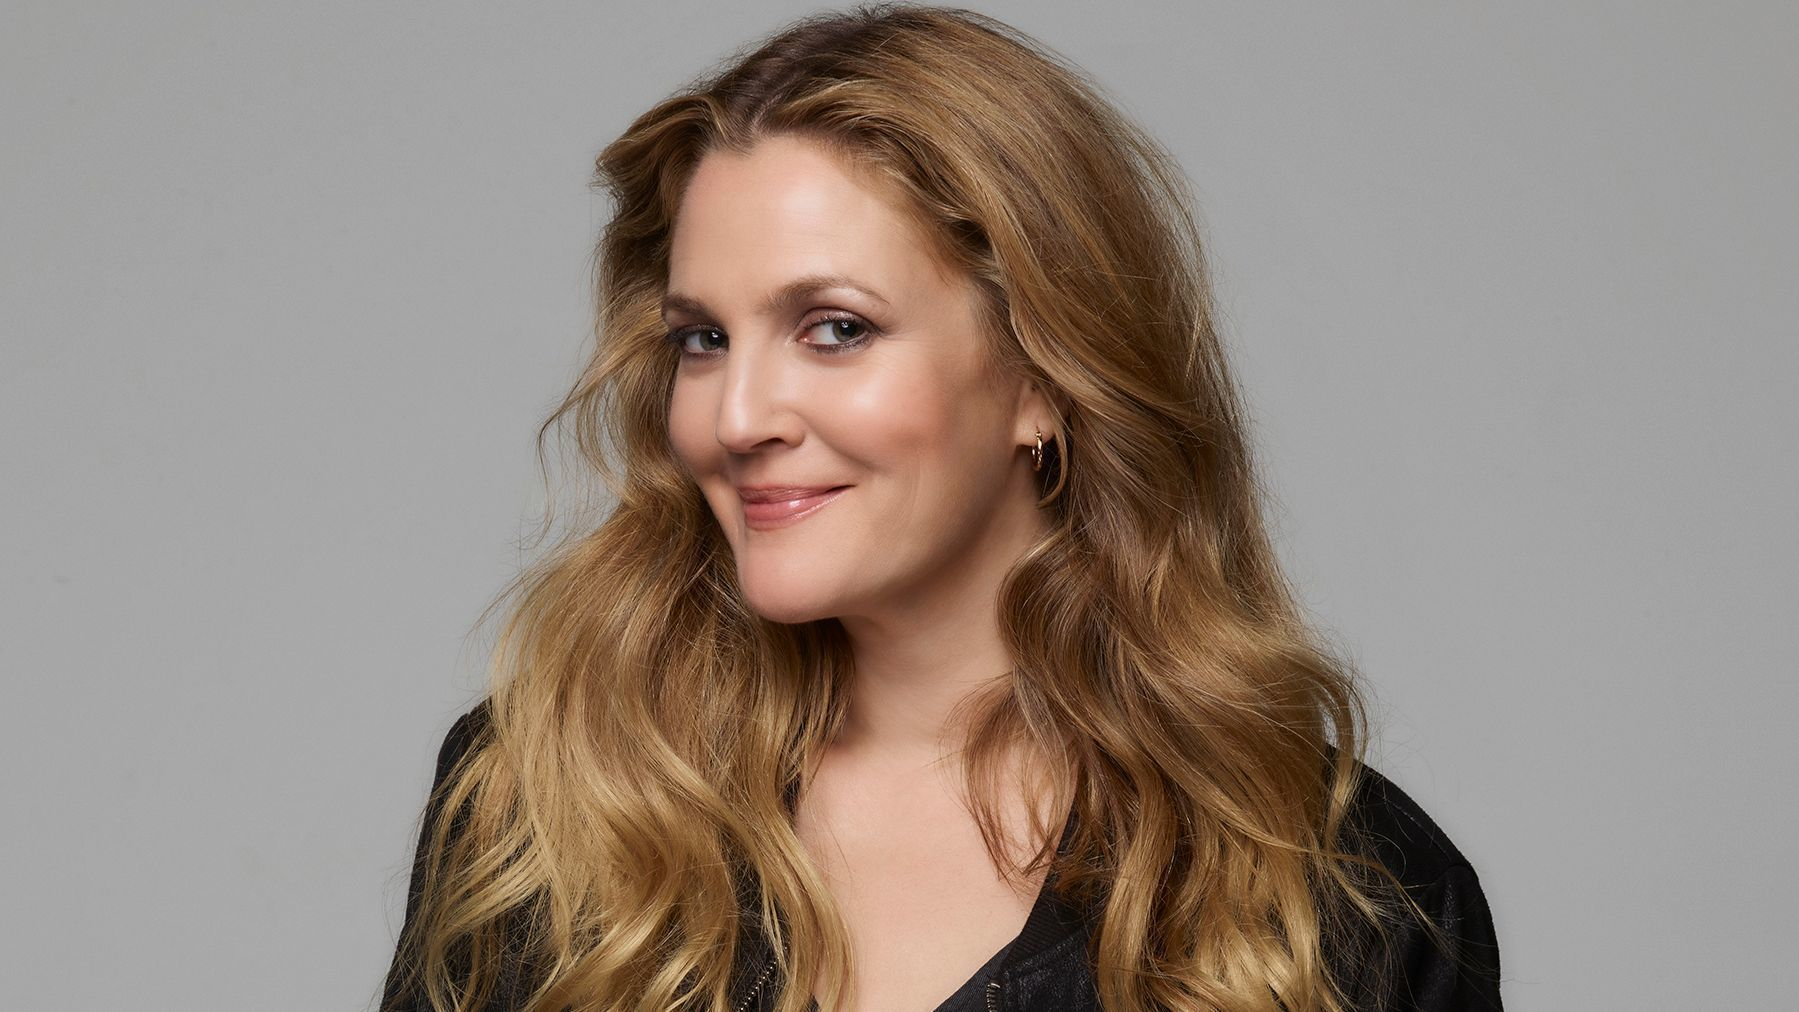 Drew Barrymore explains how her new quirky zom-com helped ... Drew Barrymore